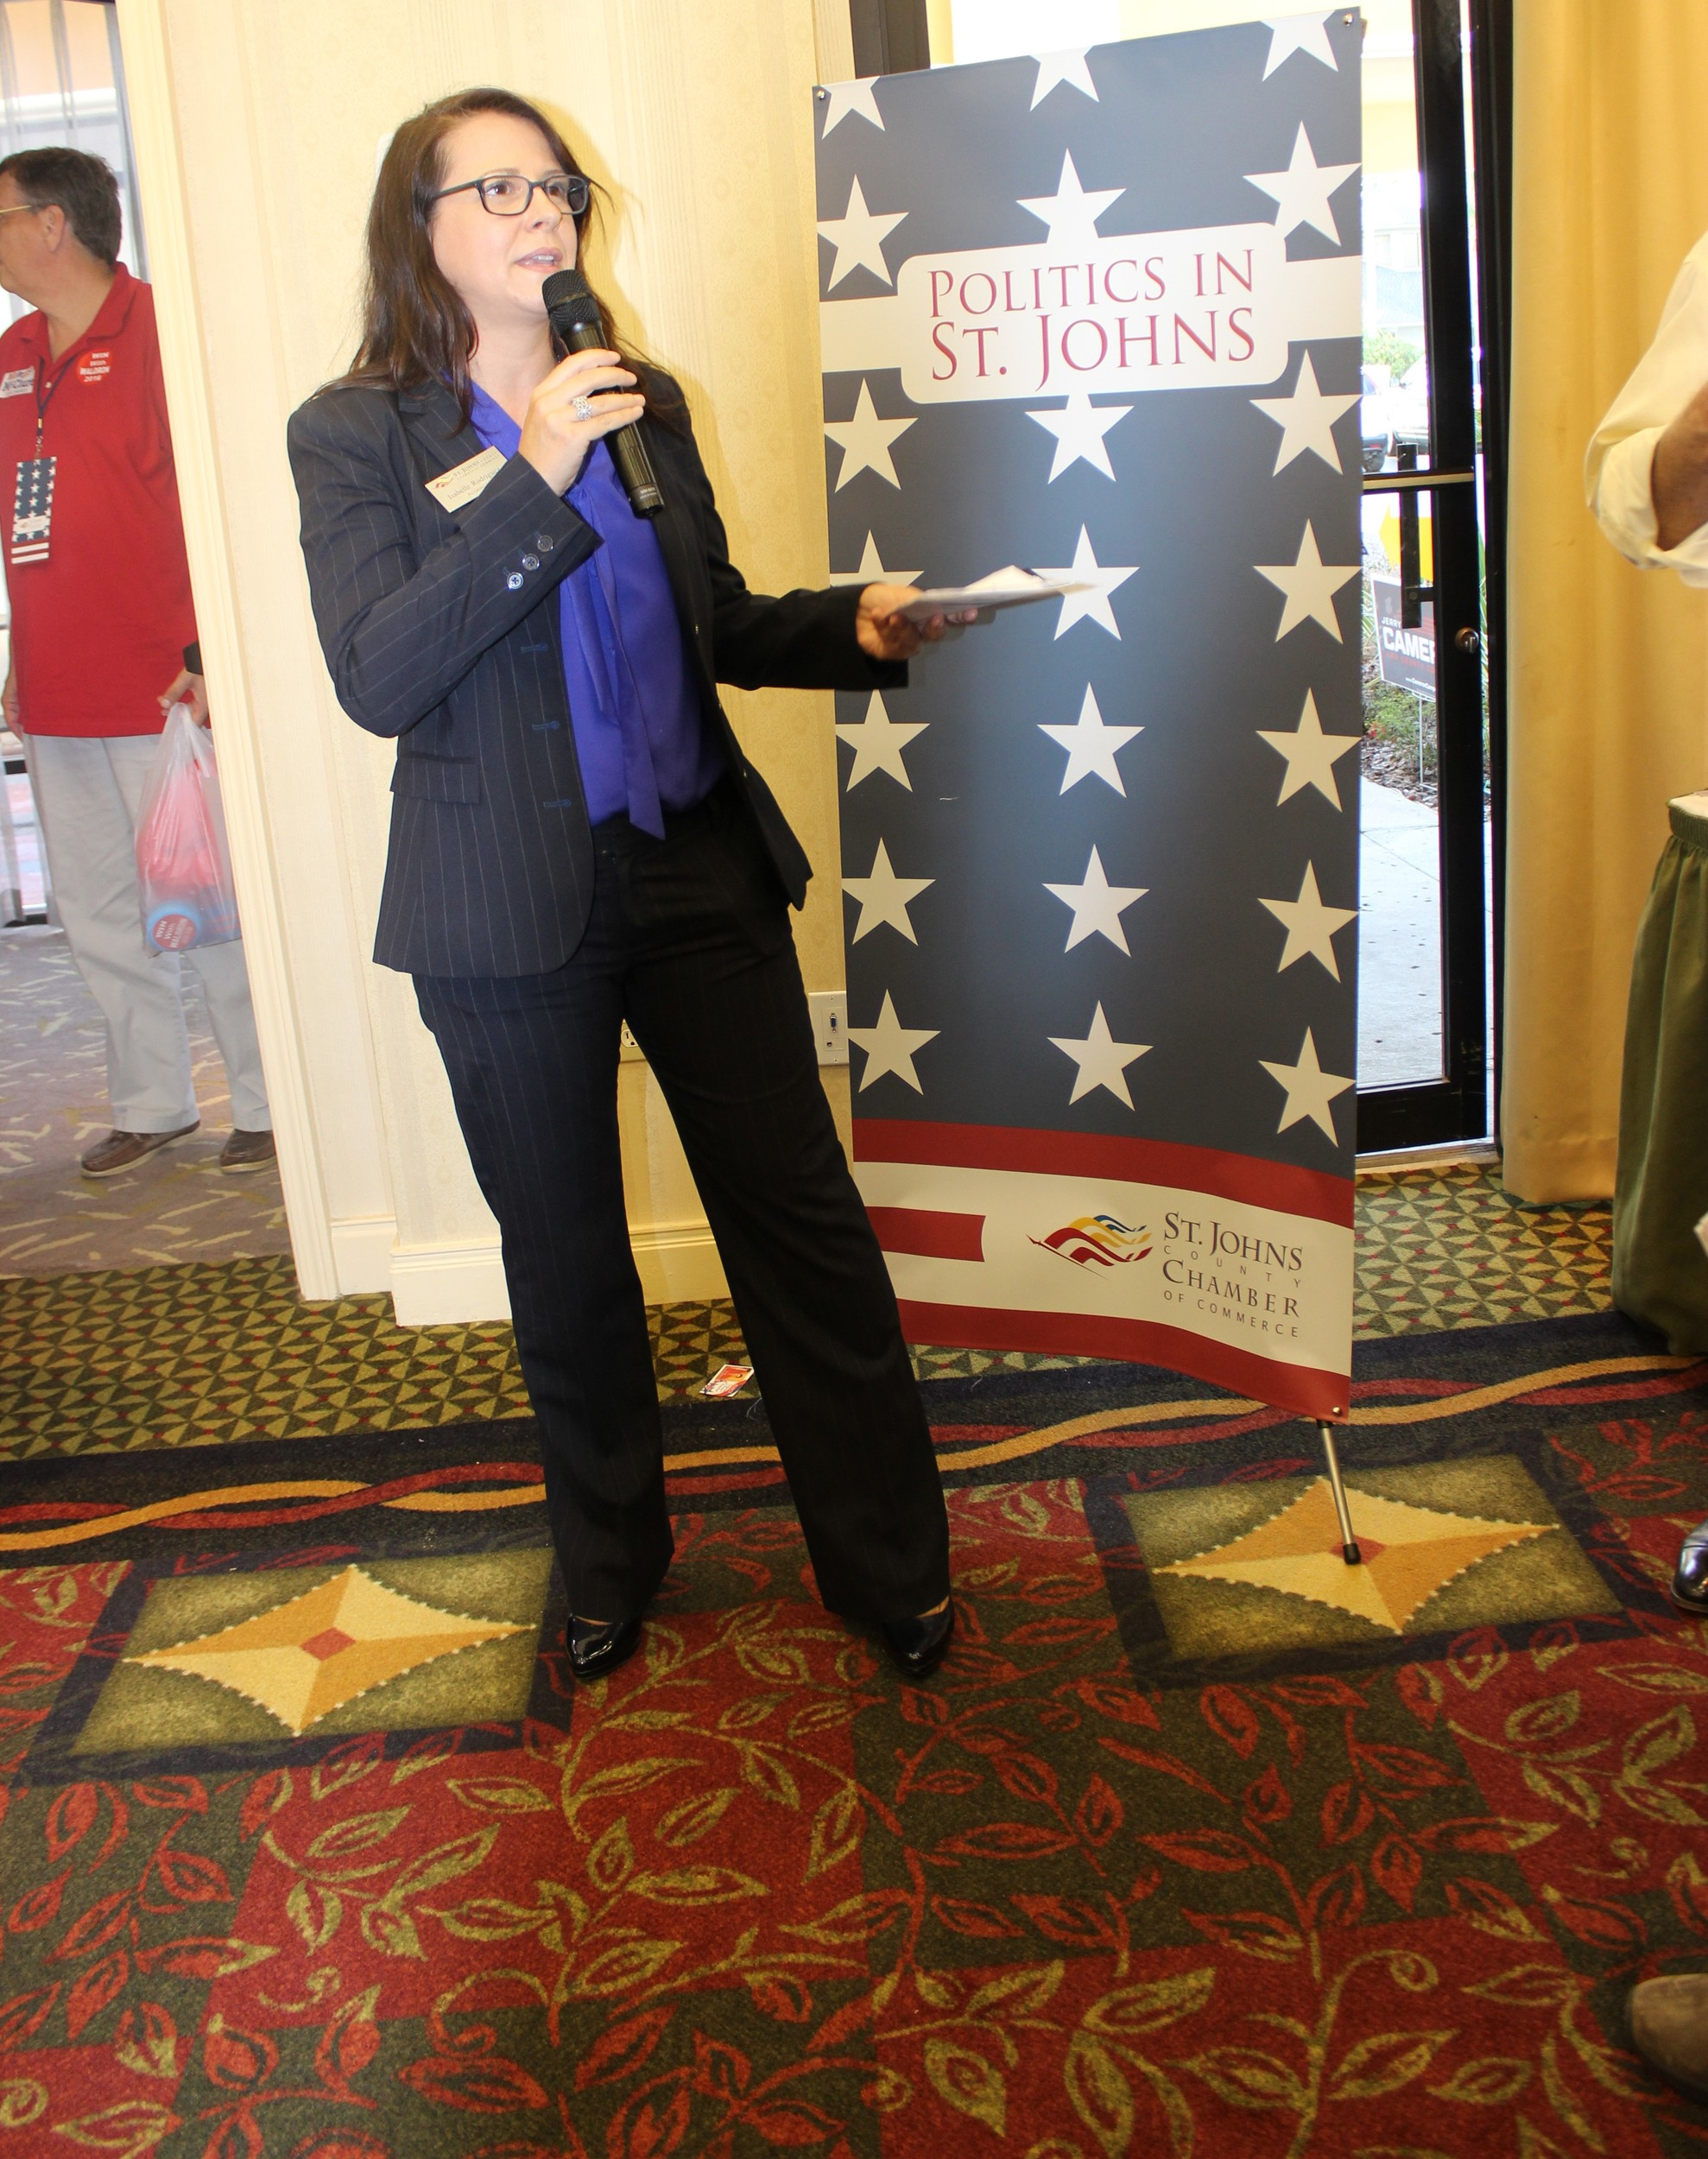 St. Johns County Chamber of Commerce President and CEO Isabelle Rodriguez